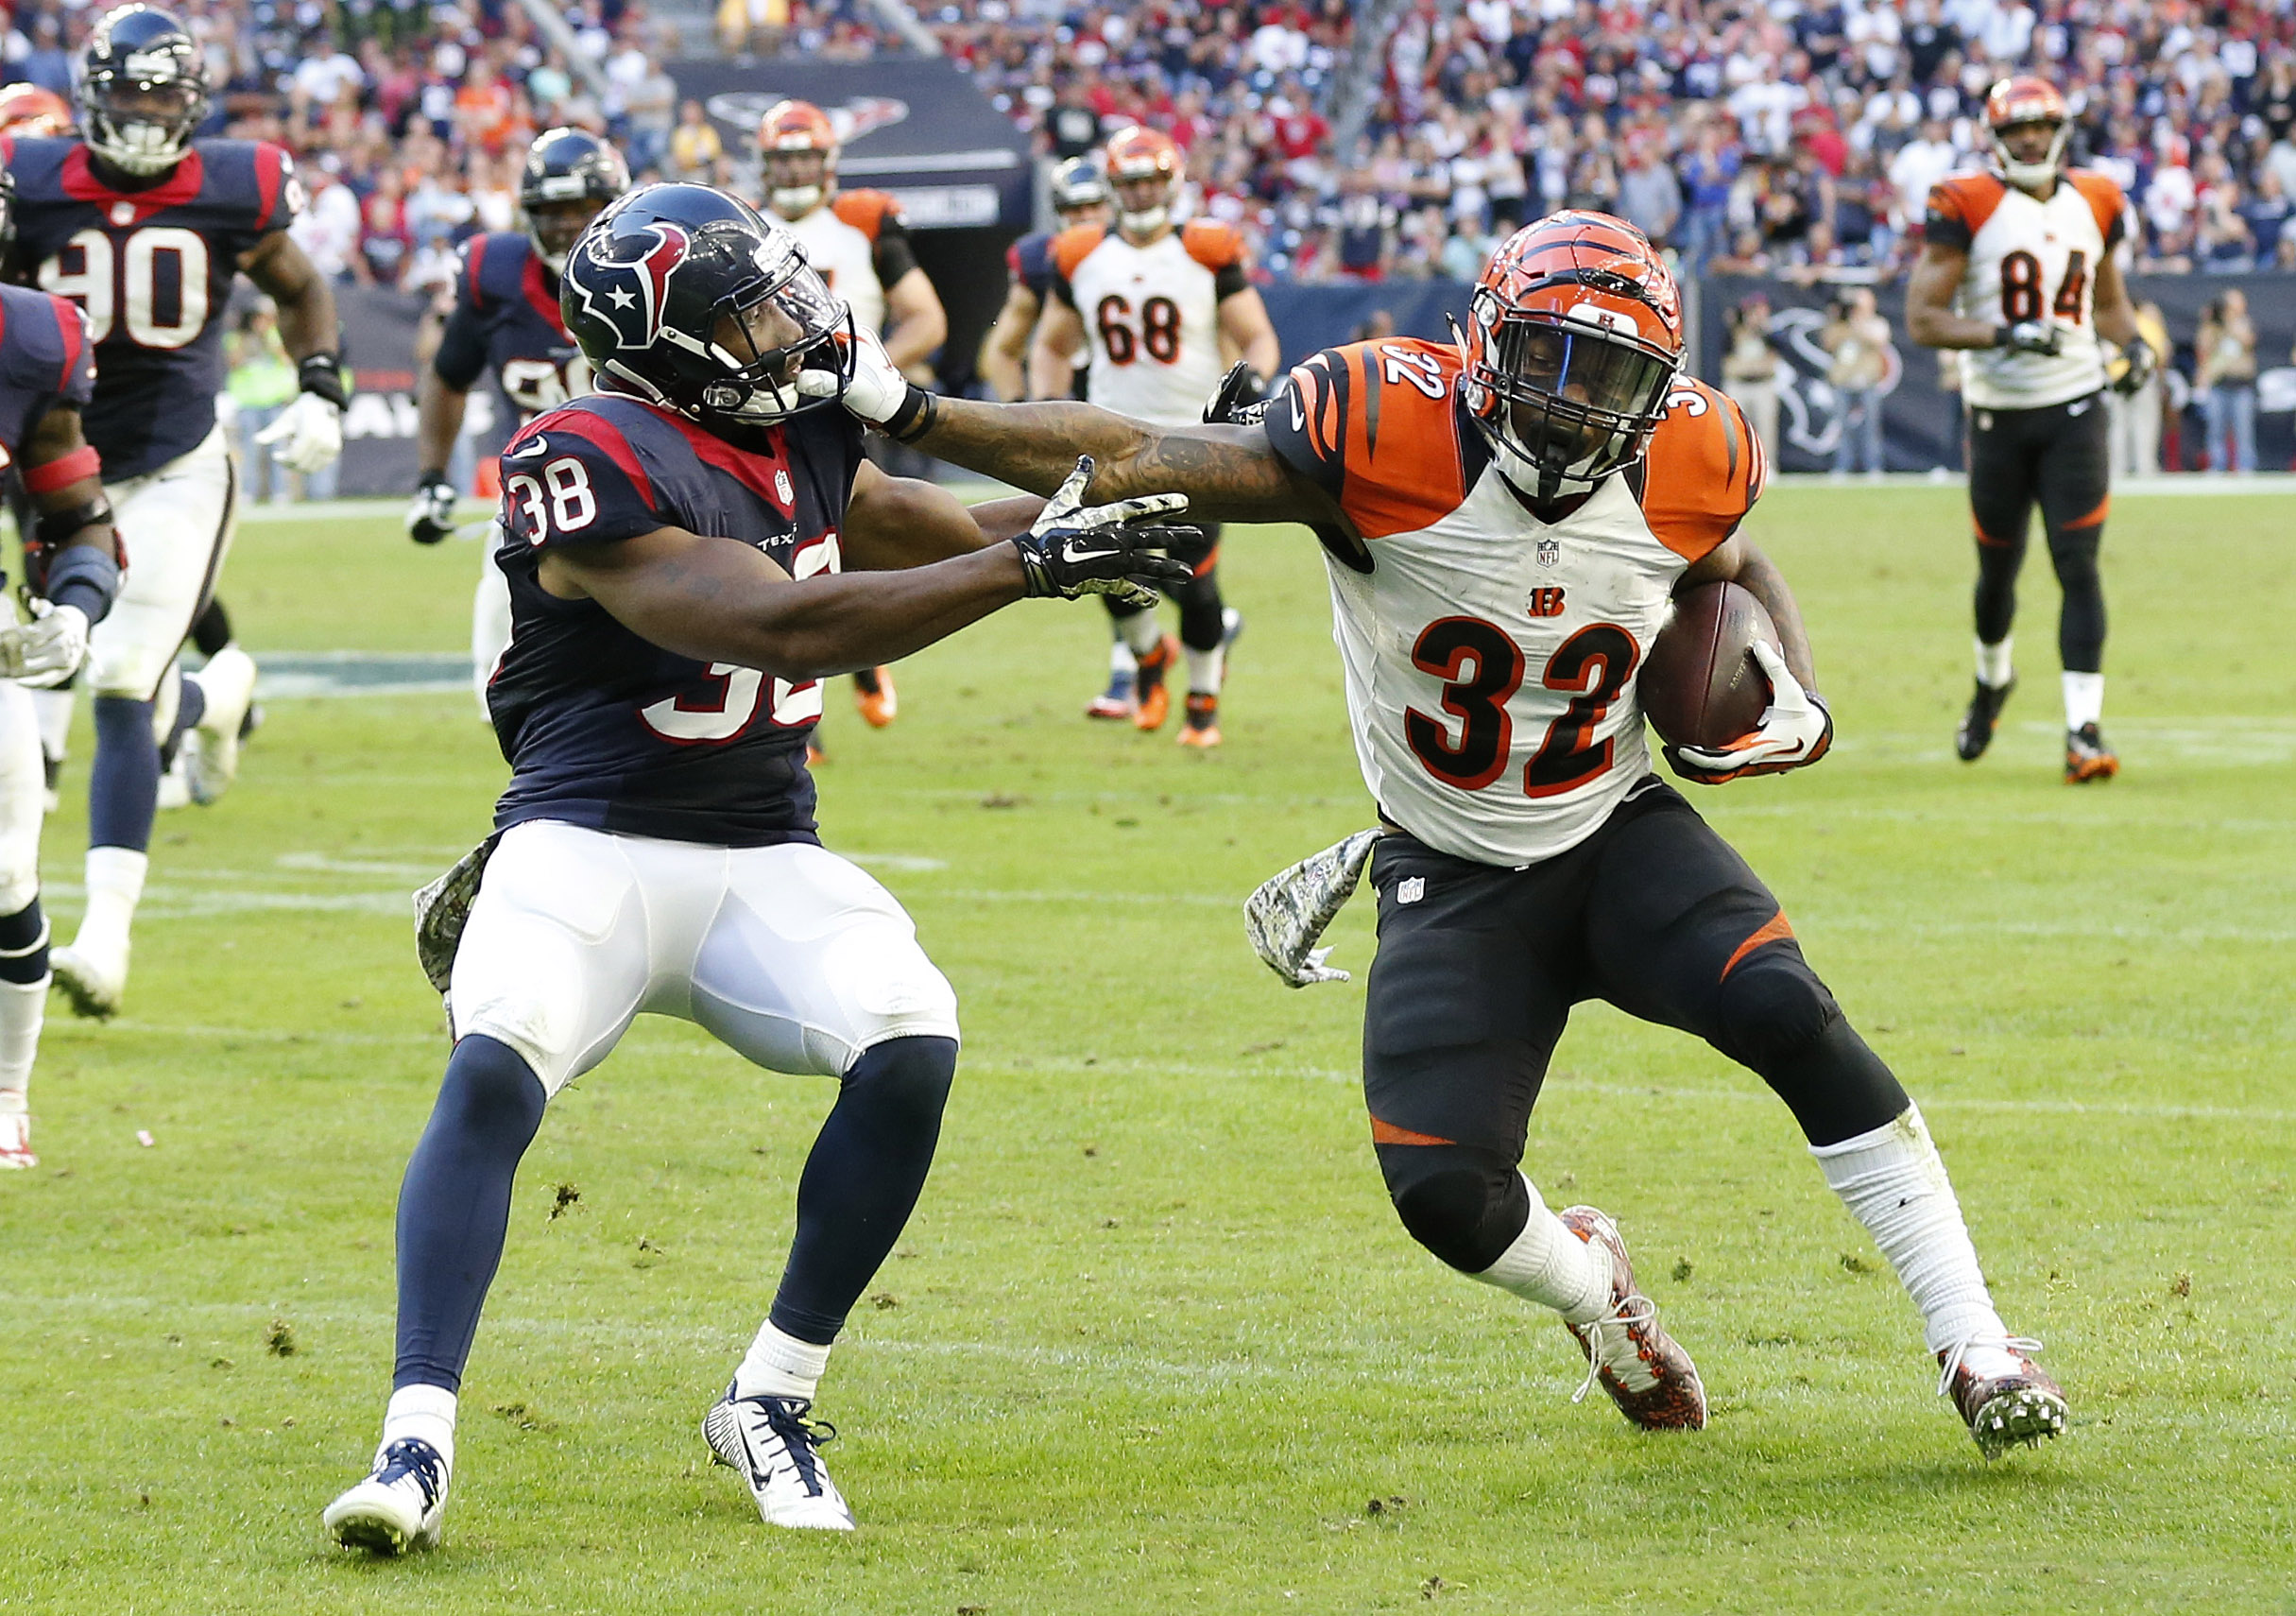 Jeremy Hill replaces Giovani Bernard as starter, Colt McCoy expected to be cleared